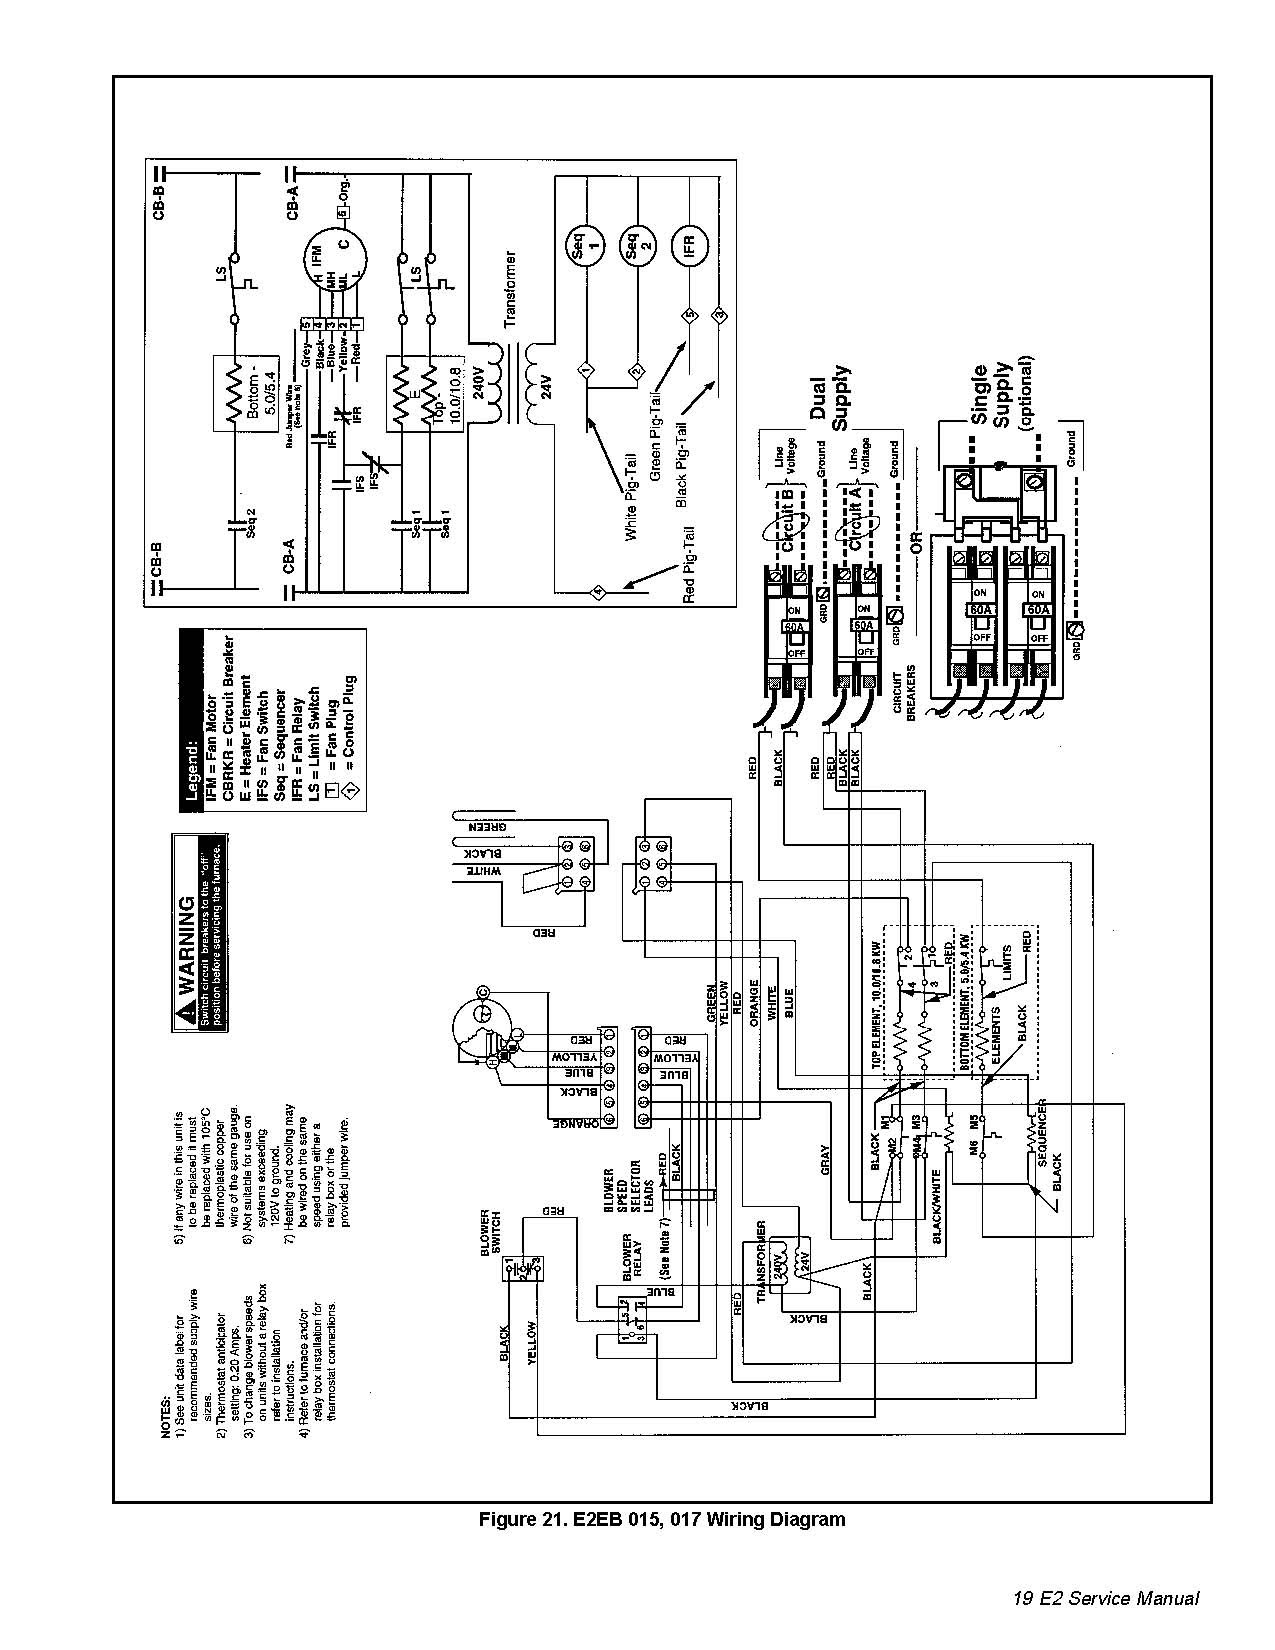 Nordyne Wiring Diagram Electric Furnace Sample